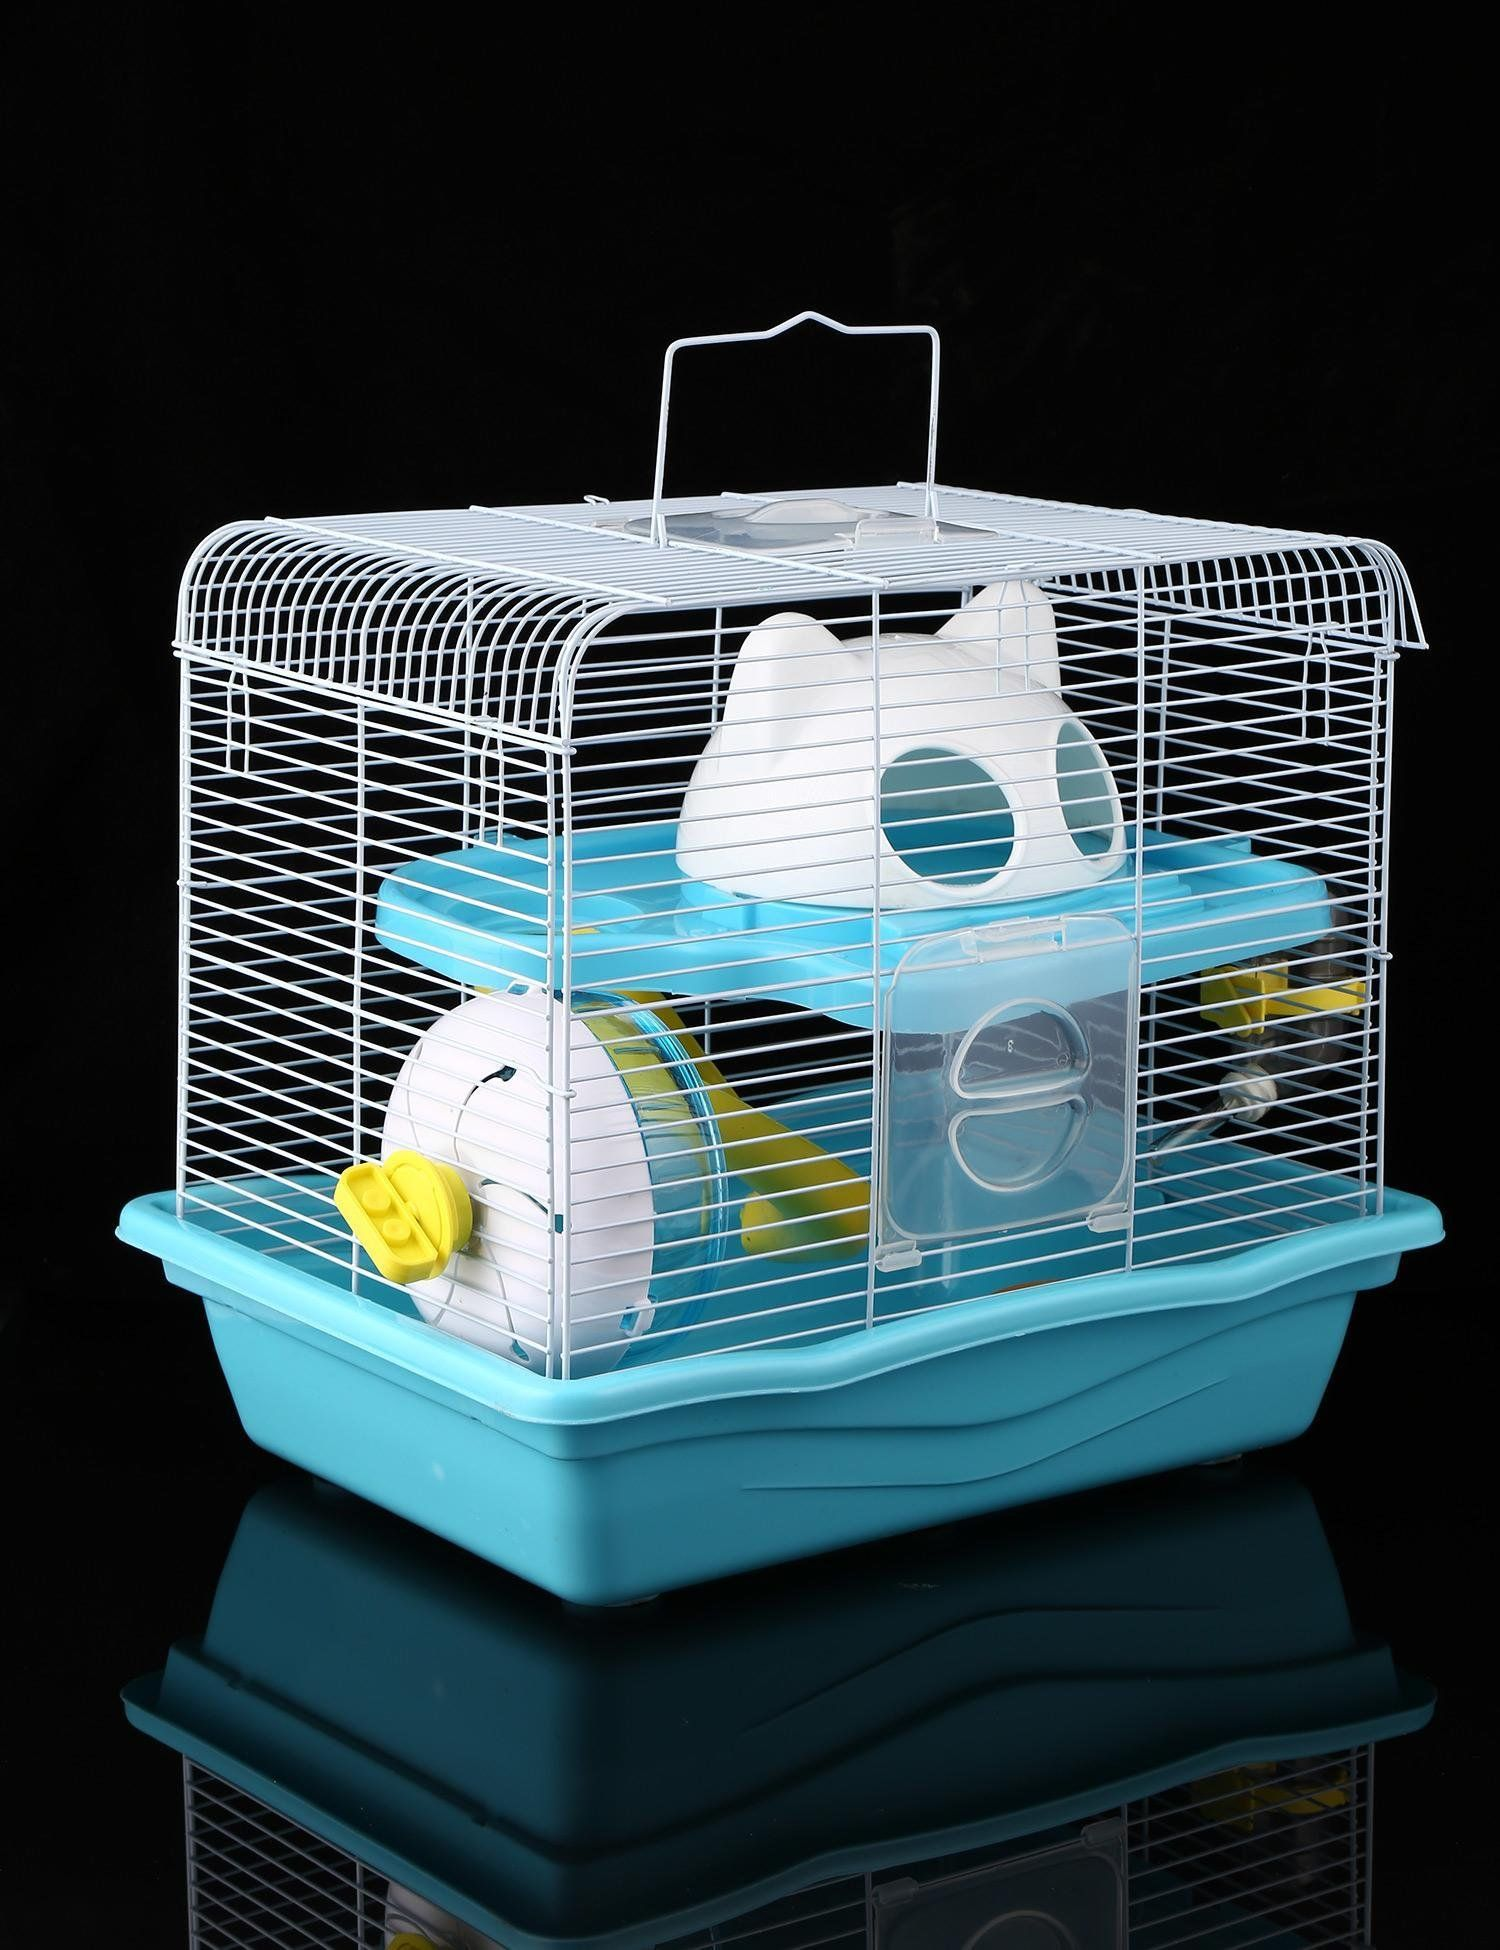 Dwarf Hamster Cage Haven Pet Products Double Layers Blue Review Extra At The Image Web Link This Is A Small Animal Cage Dwarf Hamster Cages Hamster Cage